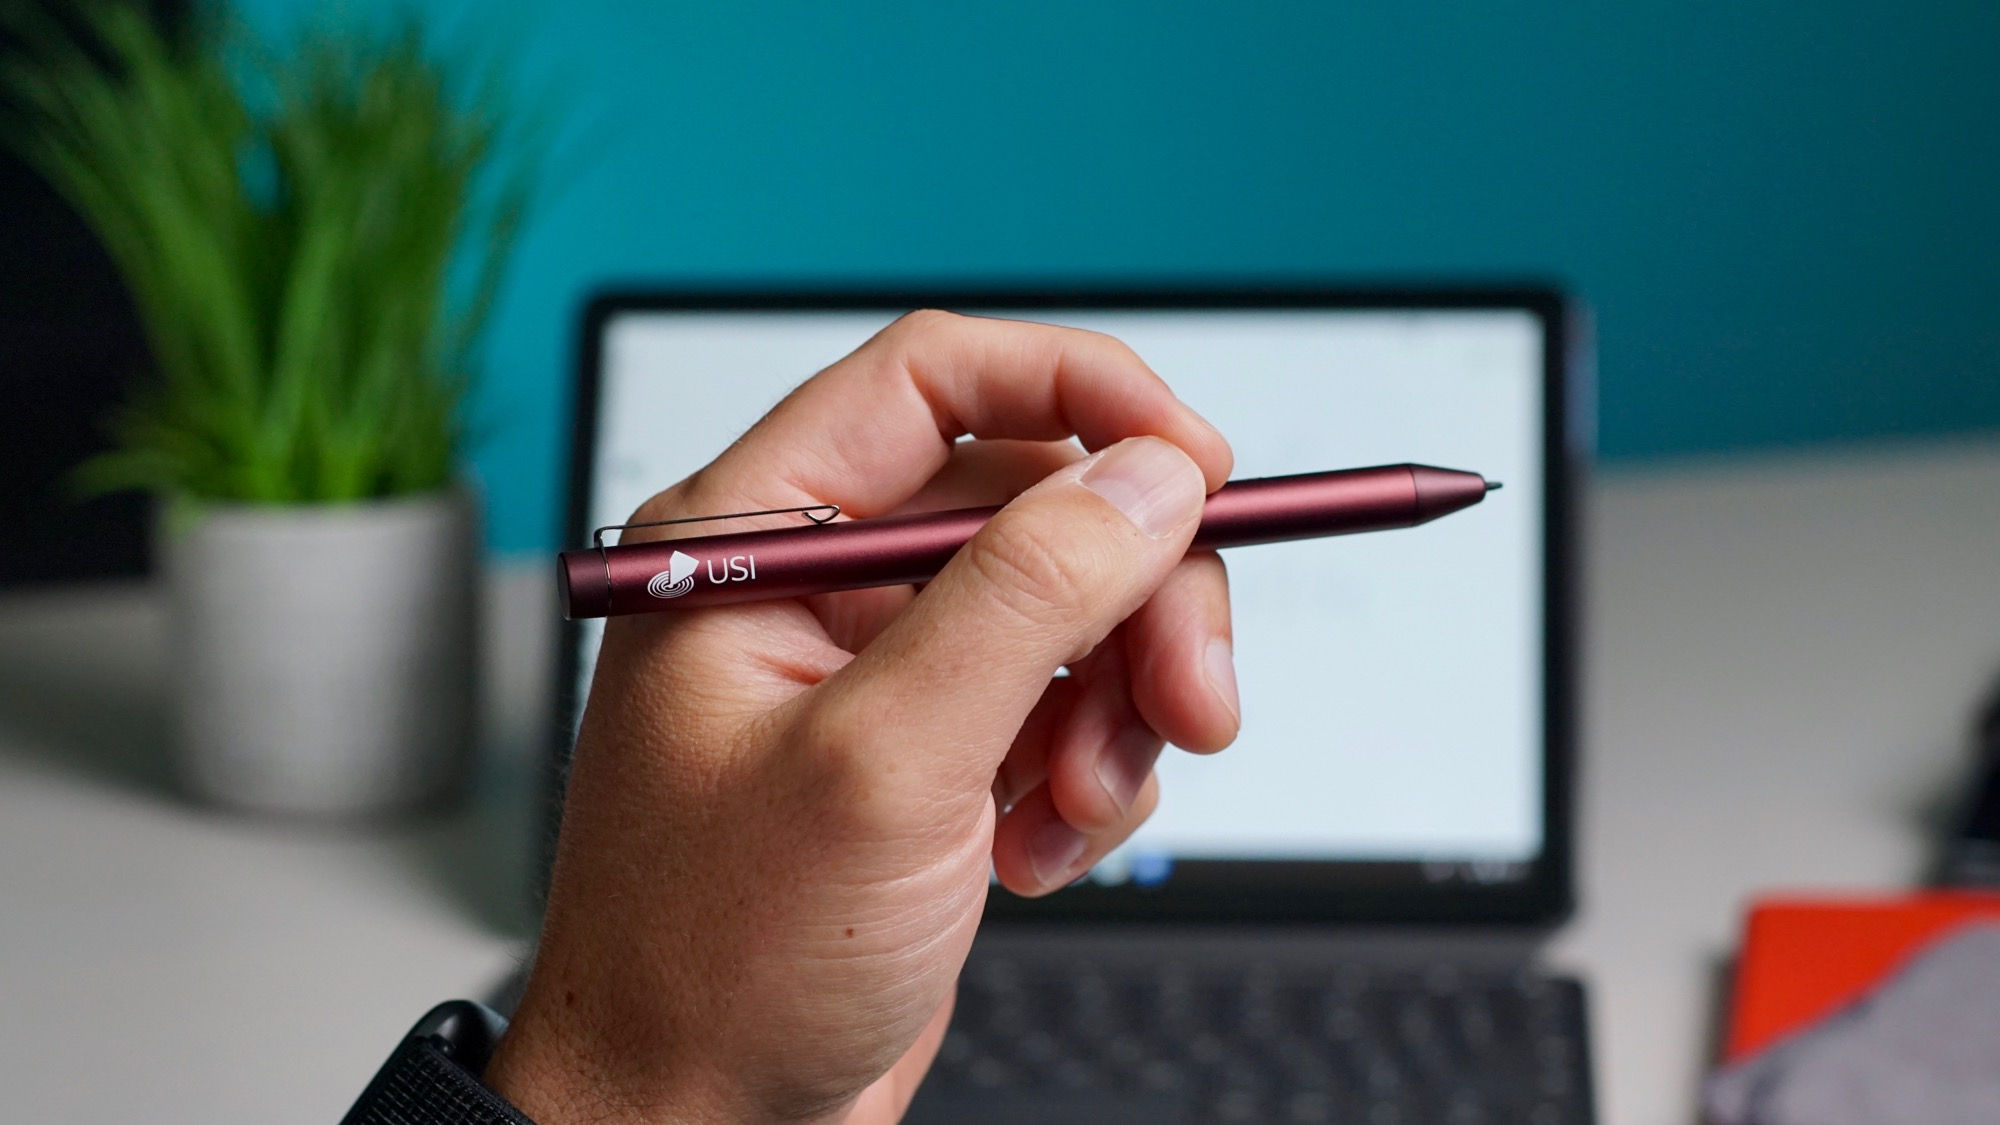 For new Chromebooks, USI pen support is the rule going forward